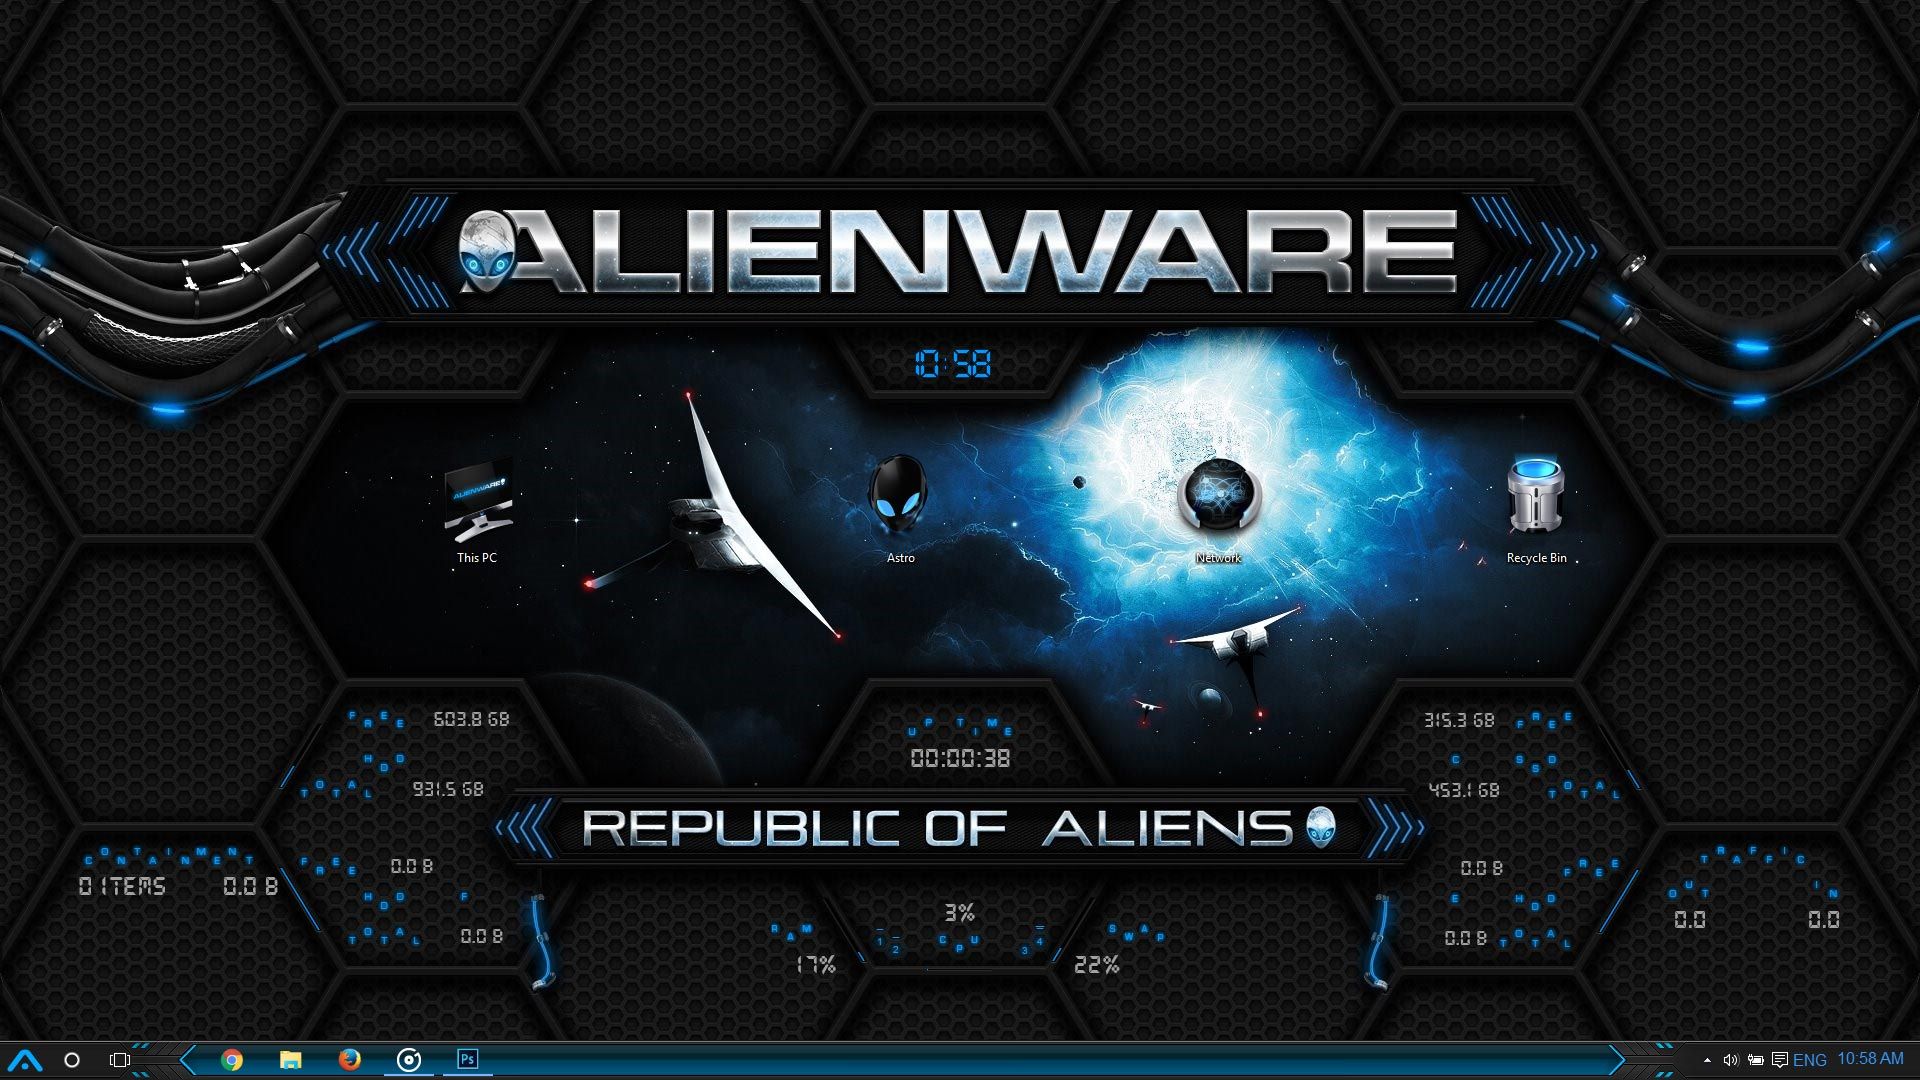 alienware windows 10 theme